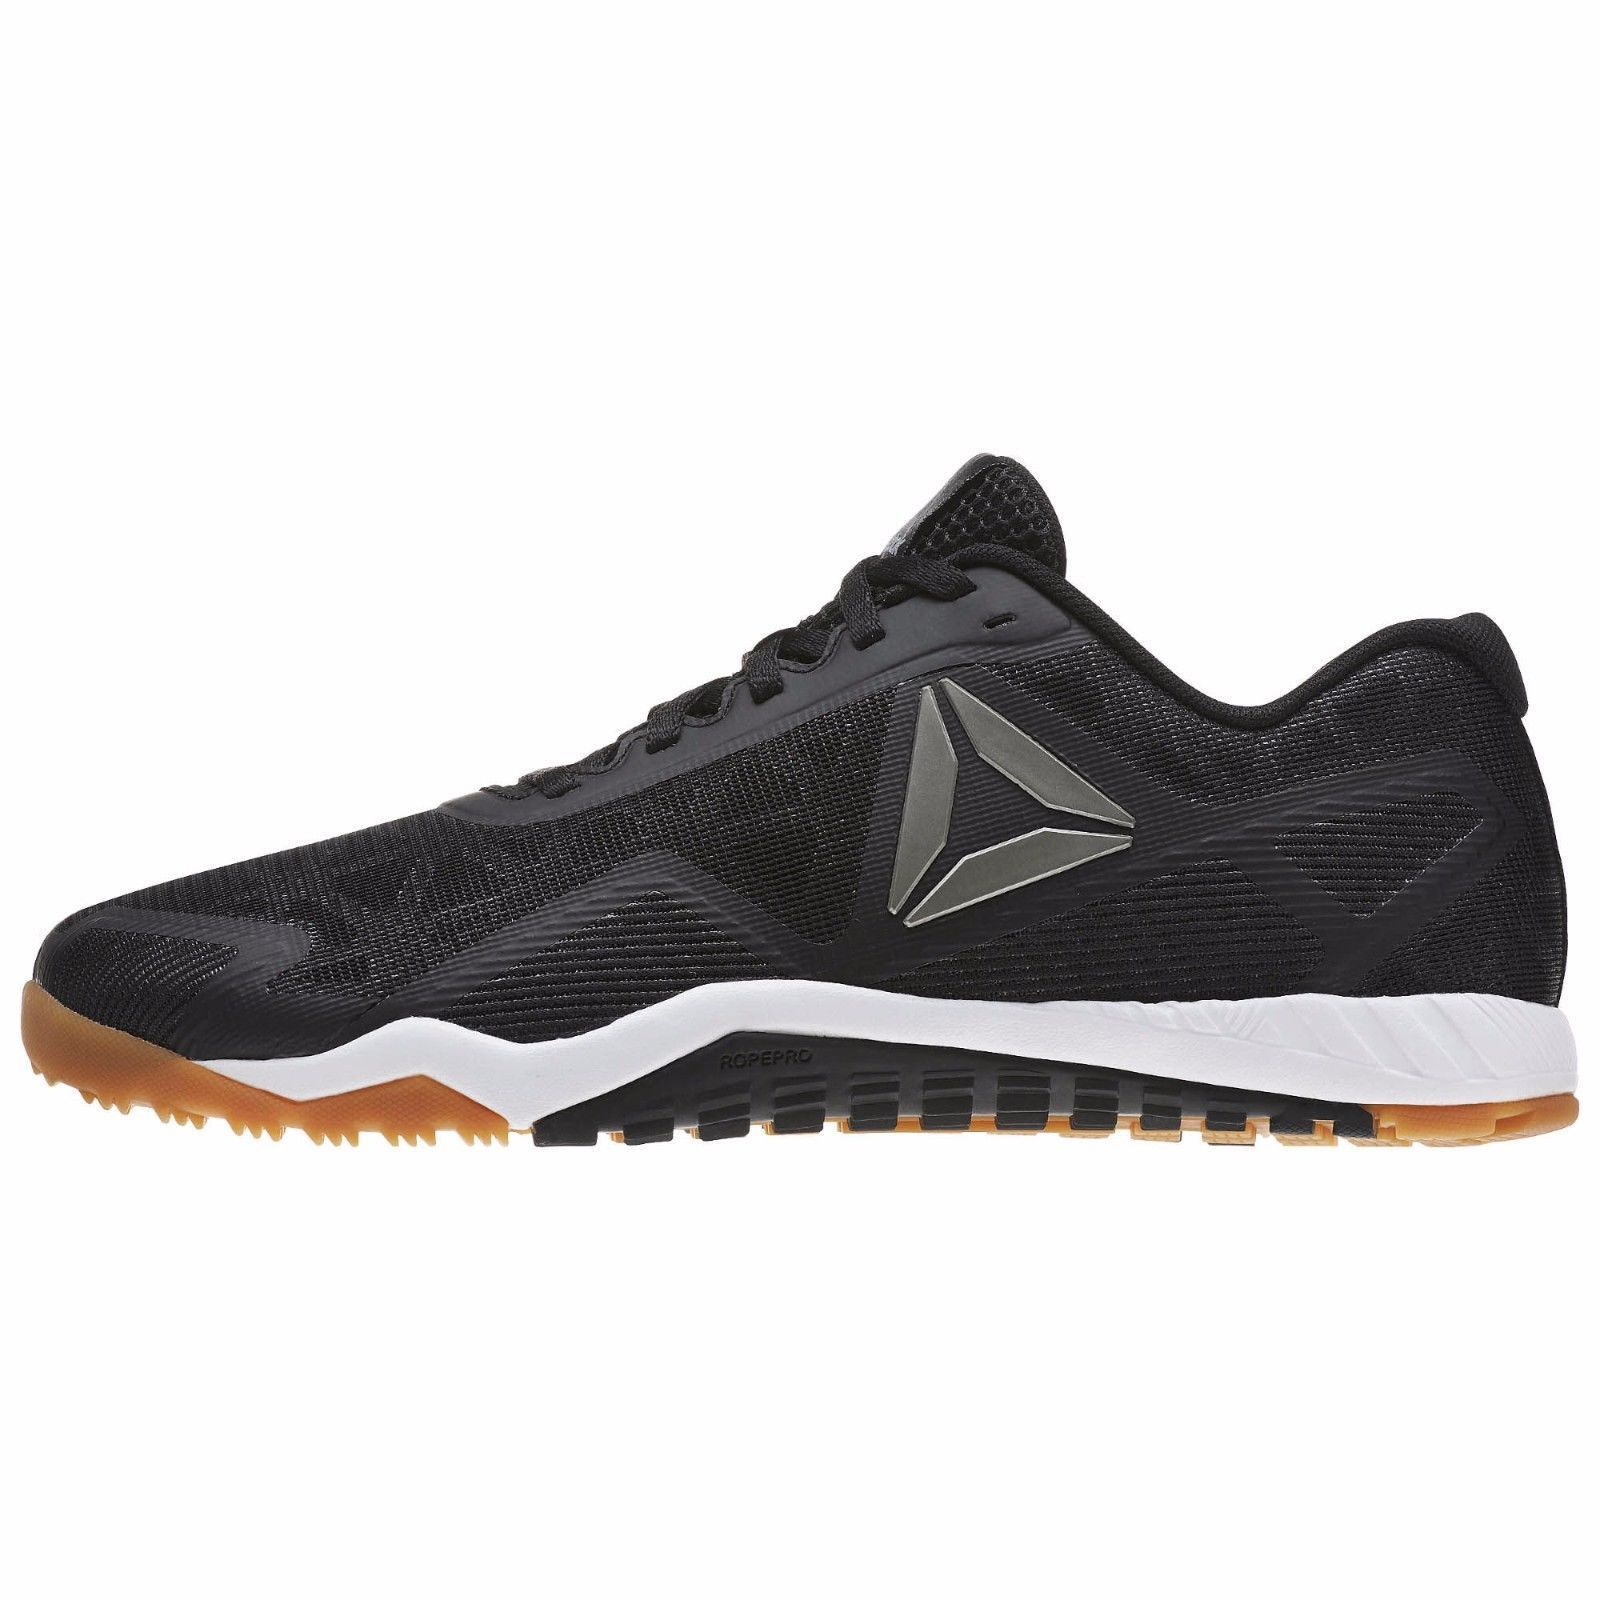 5e8285ac785 Reebok Men s Ros Workout TR 2.0 Shoes Size 7 and 40 similar items